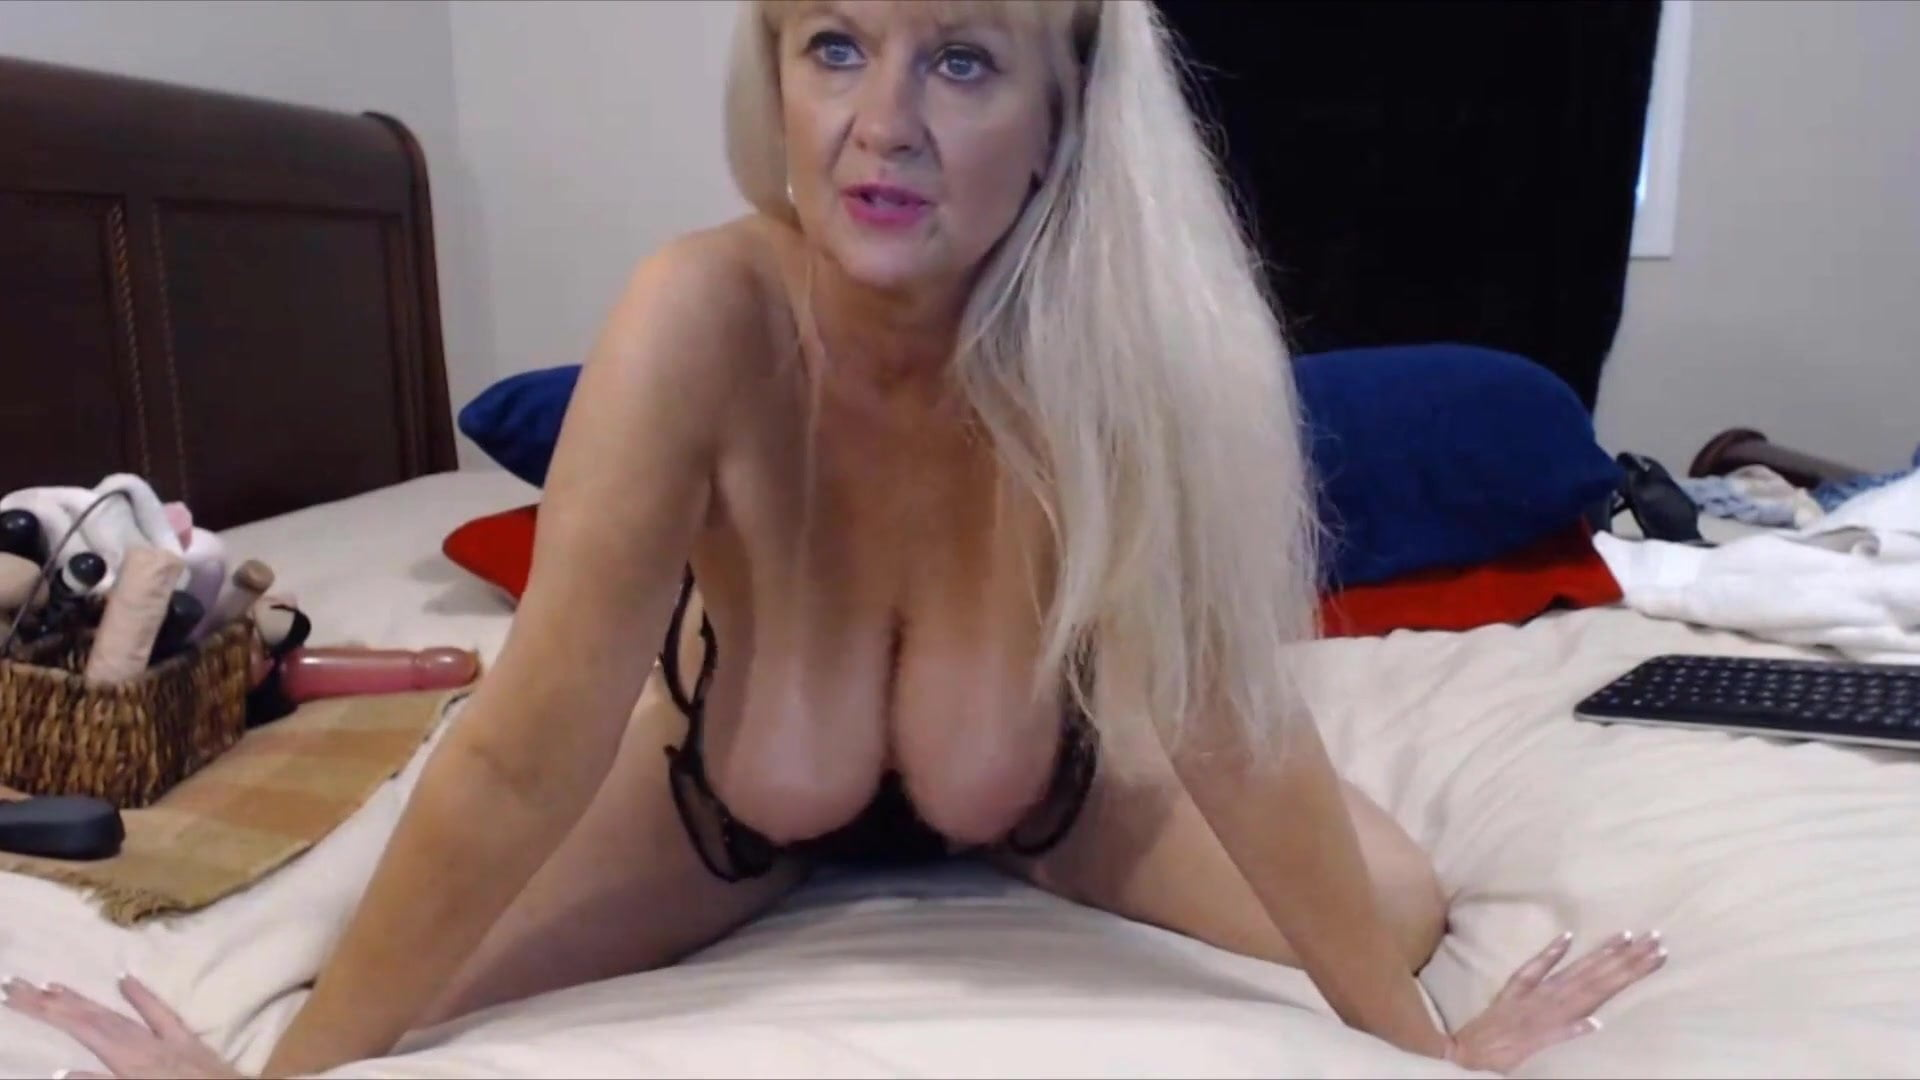 Talkative Granny Tammy With Bouncing Big Tits Free Porn B6-9918